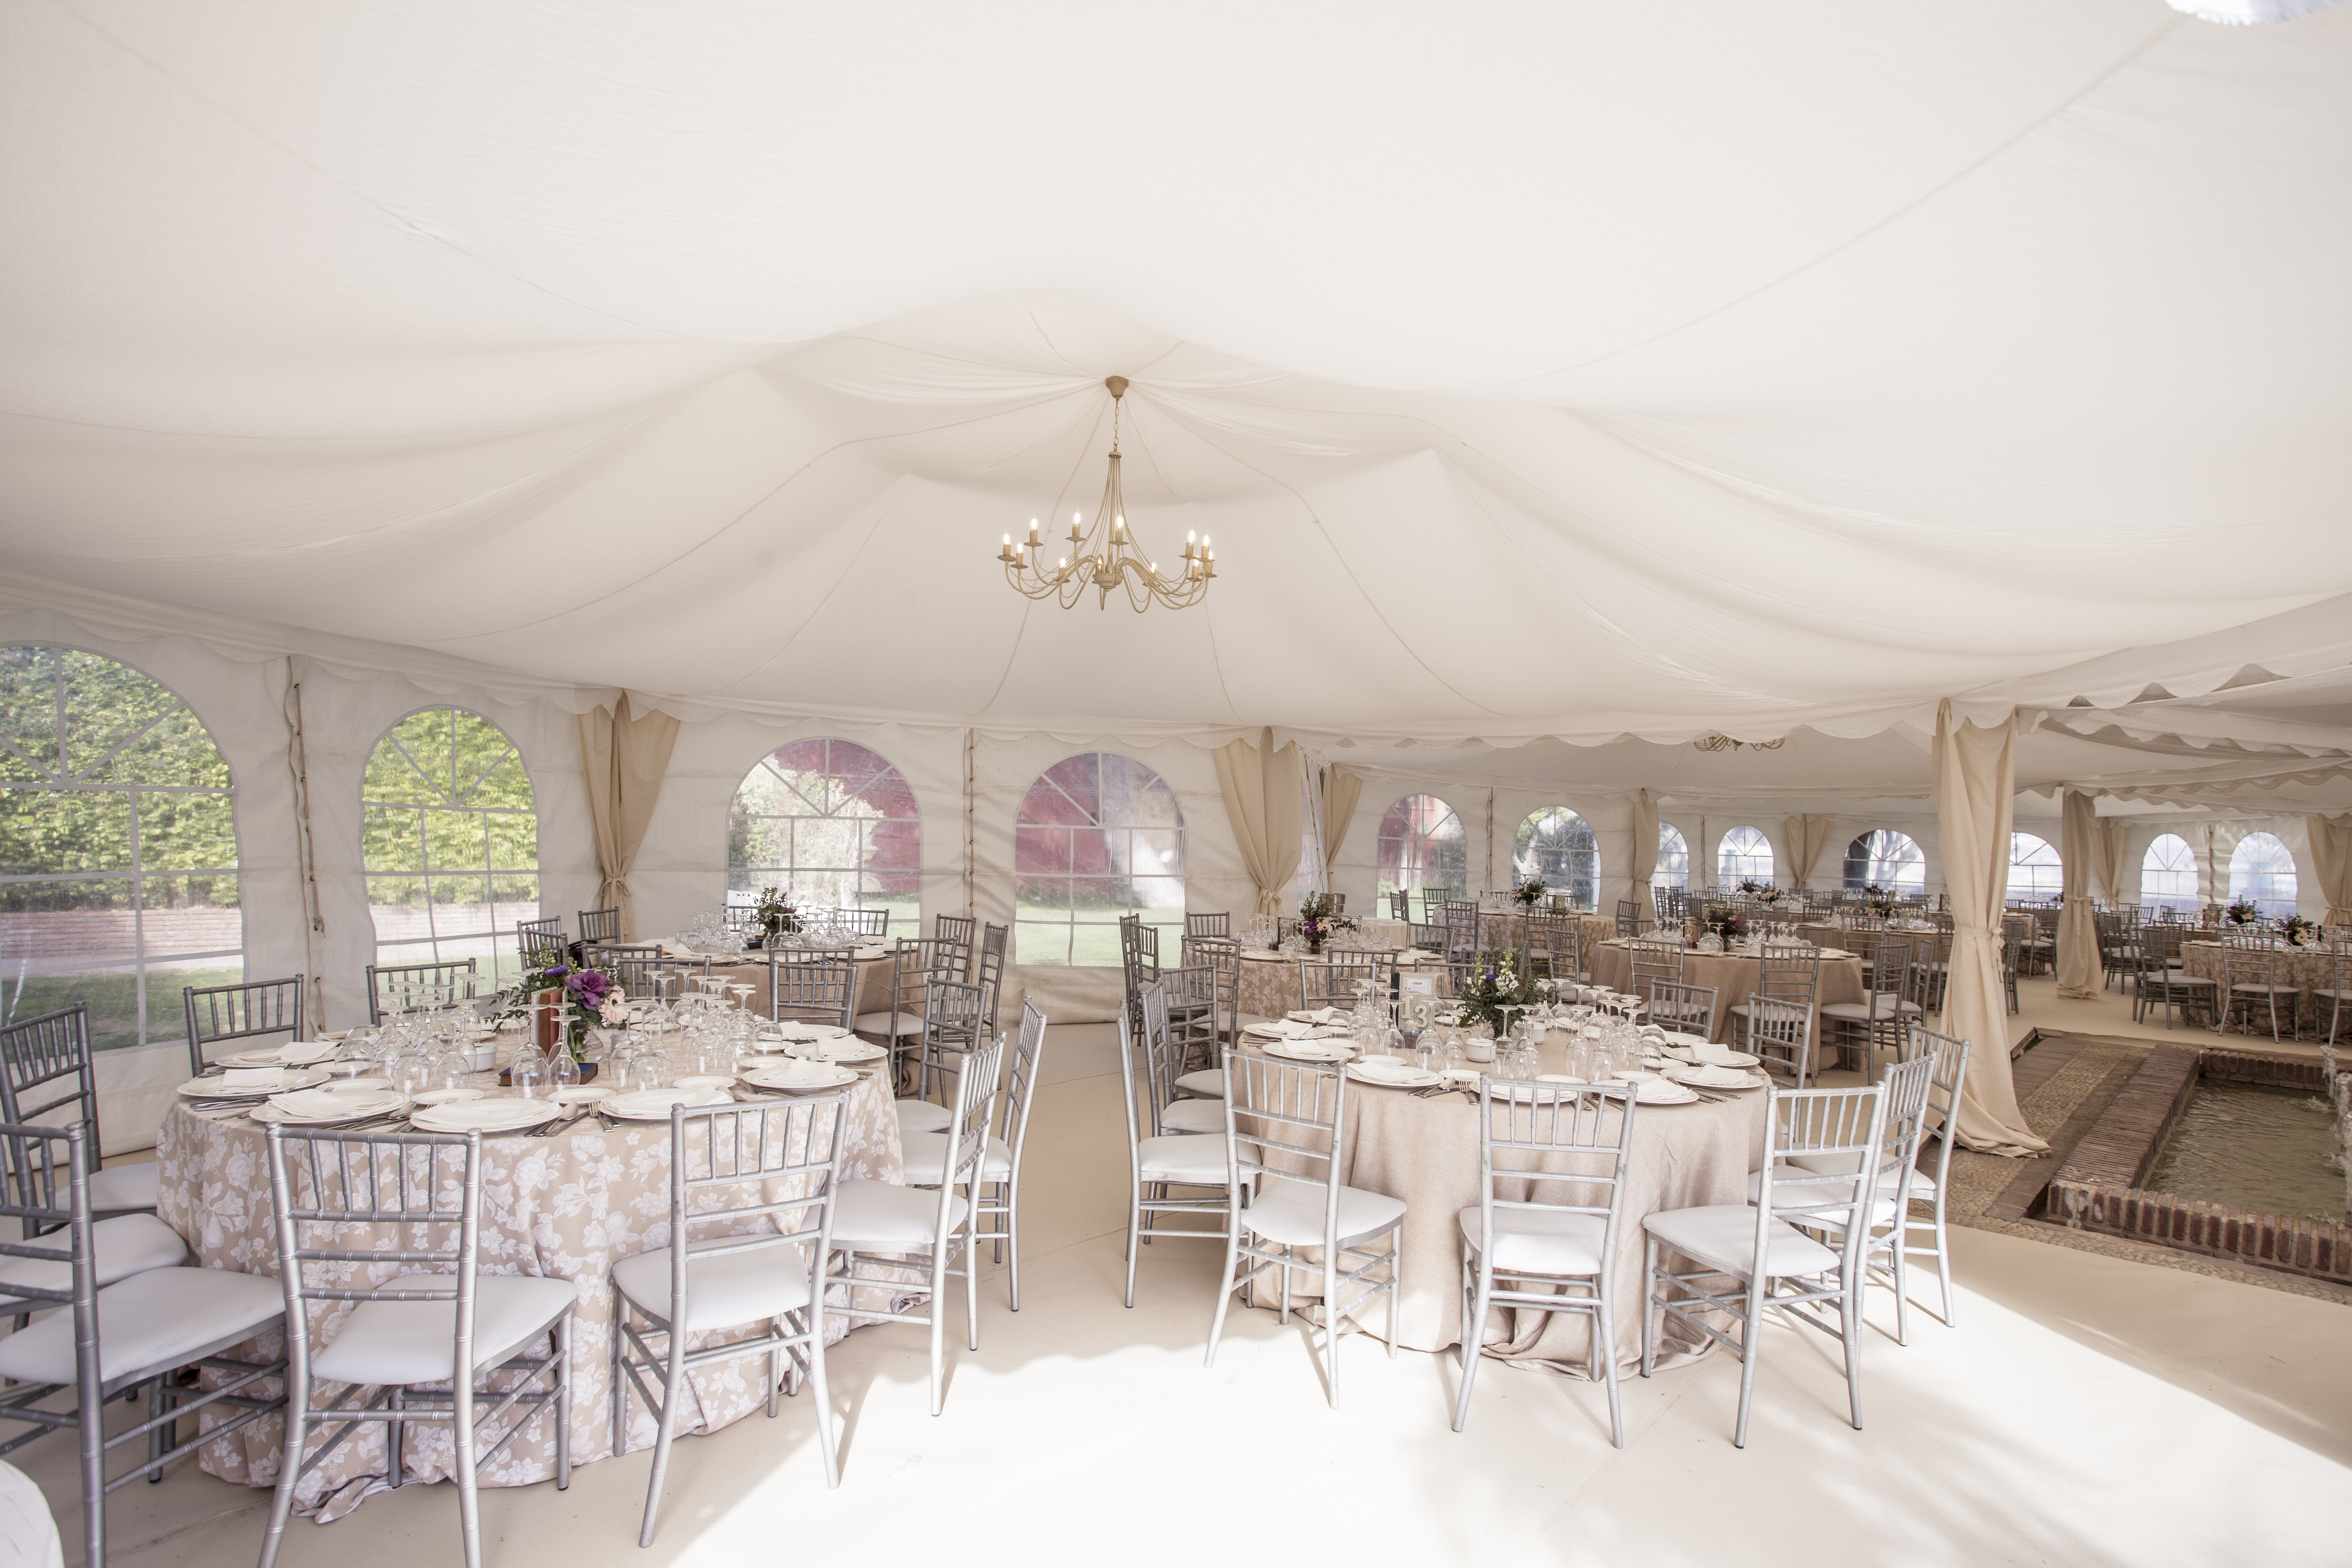 Stylish contemporary custom-made design that's perfect for weddings